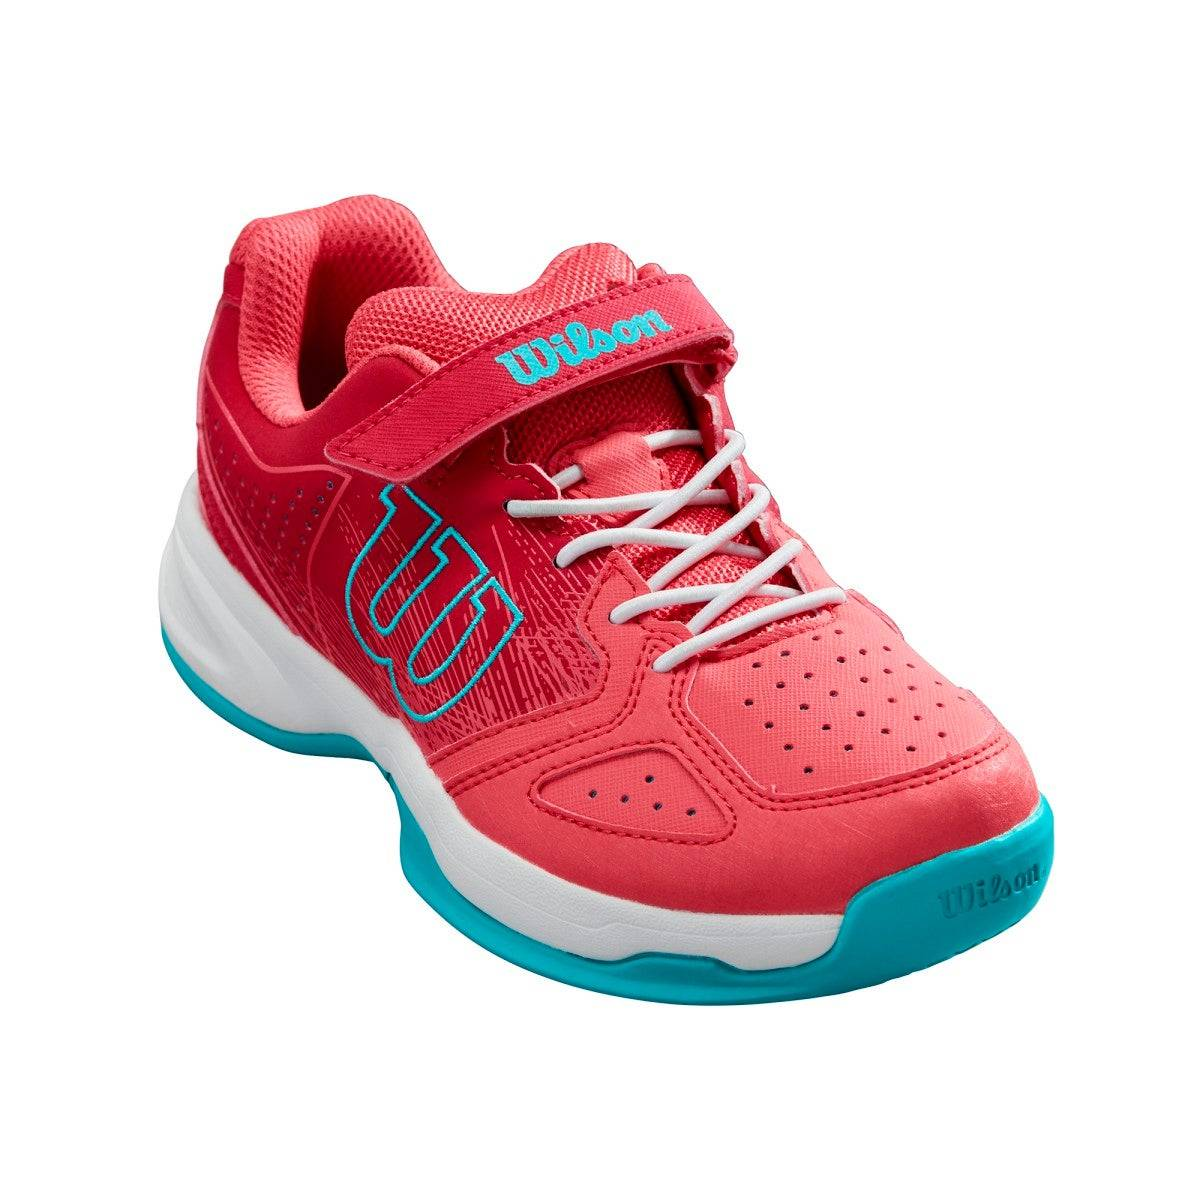 Wilson Junior Kaos K Tennis Shoes in Paradise Pink / White / Peacock Blue - Size: 1.5 Y  - Unisex - Paradise Pink/White/Peacock Blue - Size: 1.5 Y